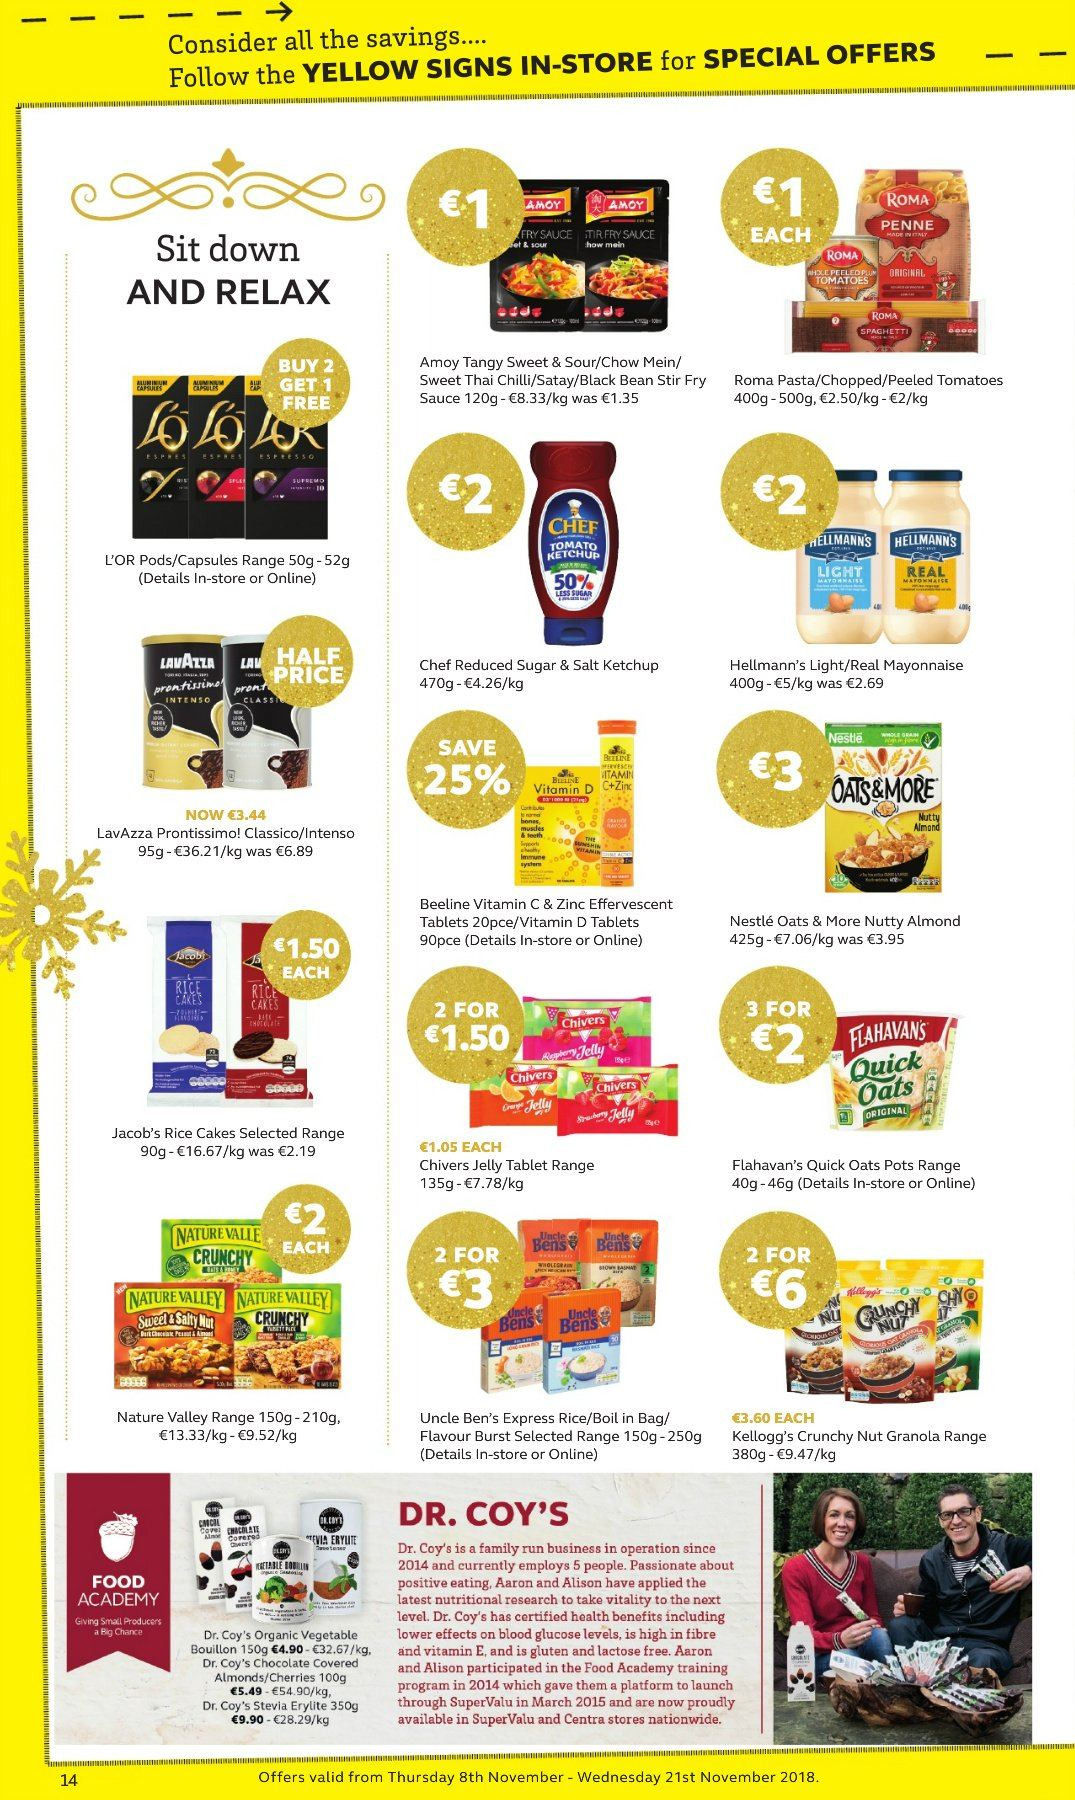 SuperValu offer  - 8.11.2018 - 21.11.2018 - Sales products - cake, beans, tomatoes, cherries, sauce, jelly, mayonnaise, Hellmann's, Nestlé, Kellogg's, bouillon, oats, stevia, Uncle Ben's, granola, Quick Oats, Nature Valley, rice, pasta, penne, almonds, L'Or, Intenso, Lavazza, vitamin c, zinc. Page 14.